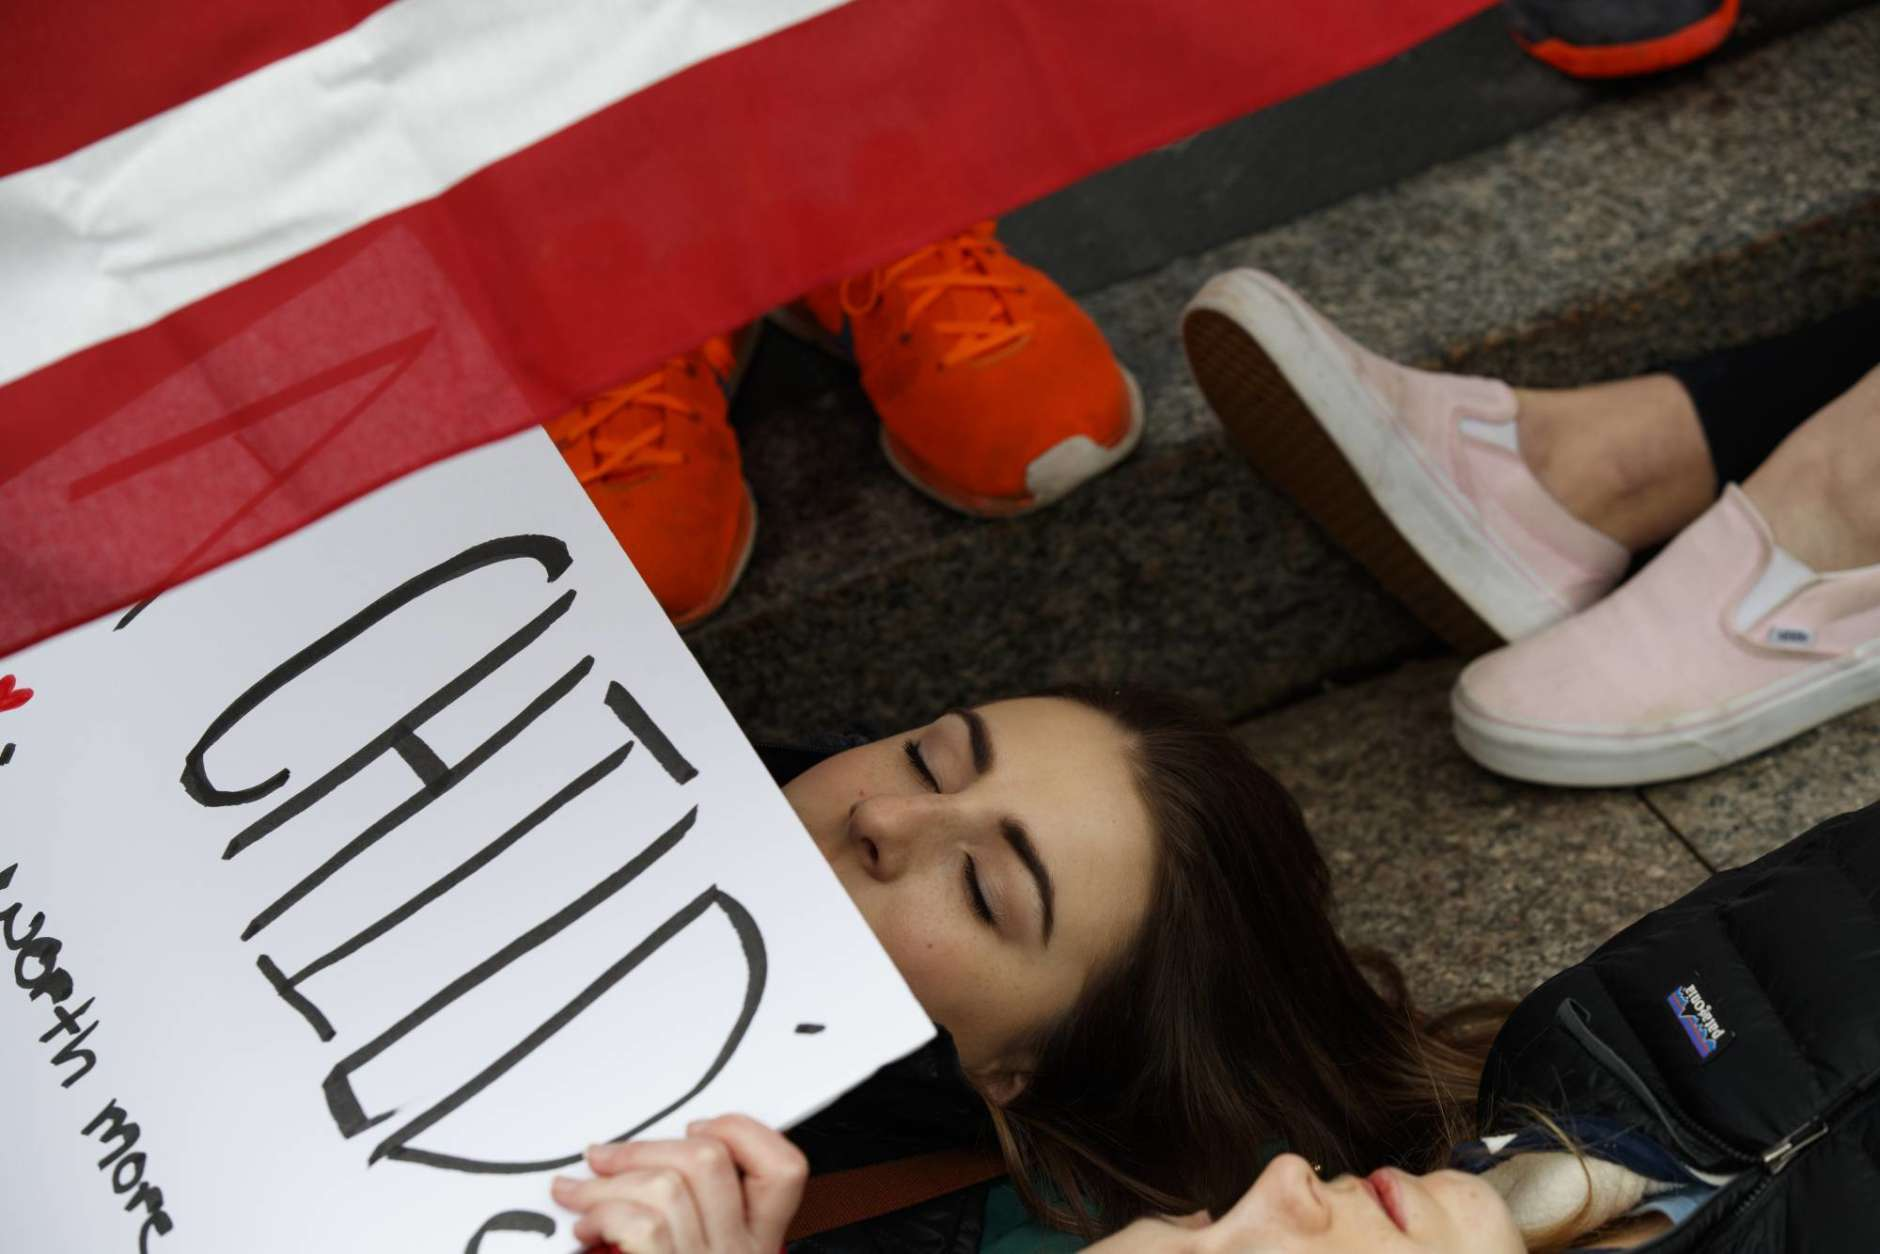 """Anna Hurley, 15, of Washington, top, and other demonstrators participate in a """"lie-in"""" during a protest in favor of gun control reform in front of the White House, Monday, Feb. 19, 2018, in Washington. (AP Photo/Evan Vucci)"""